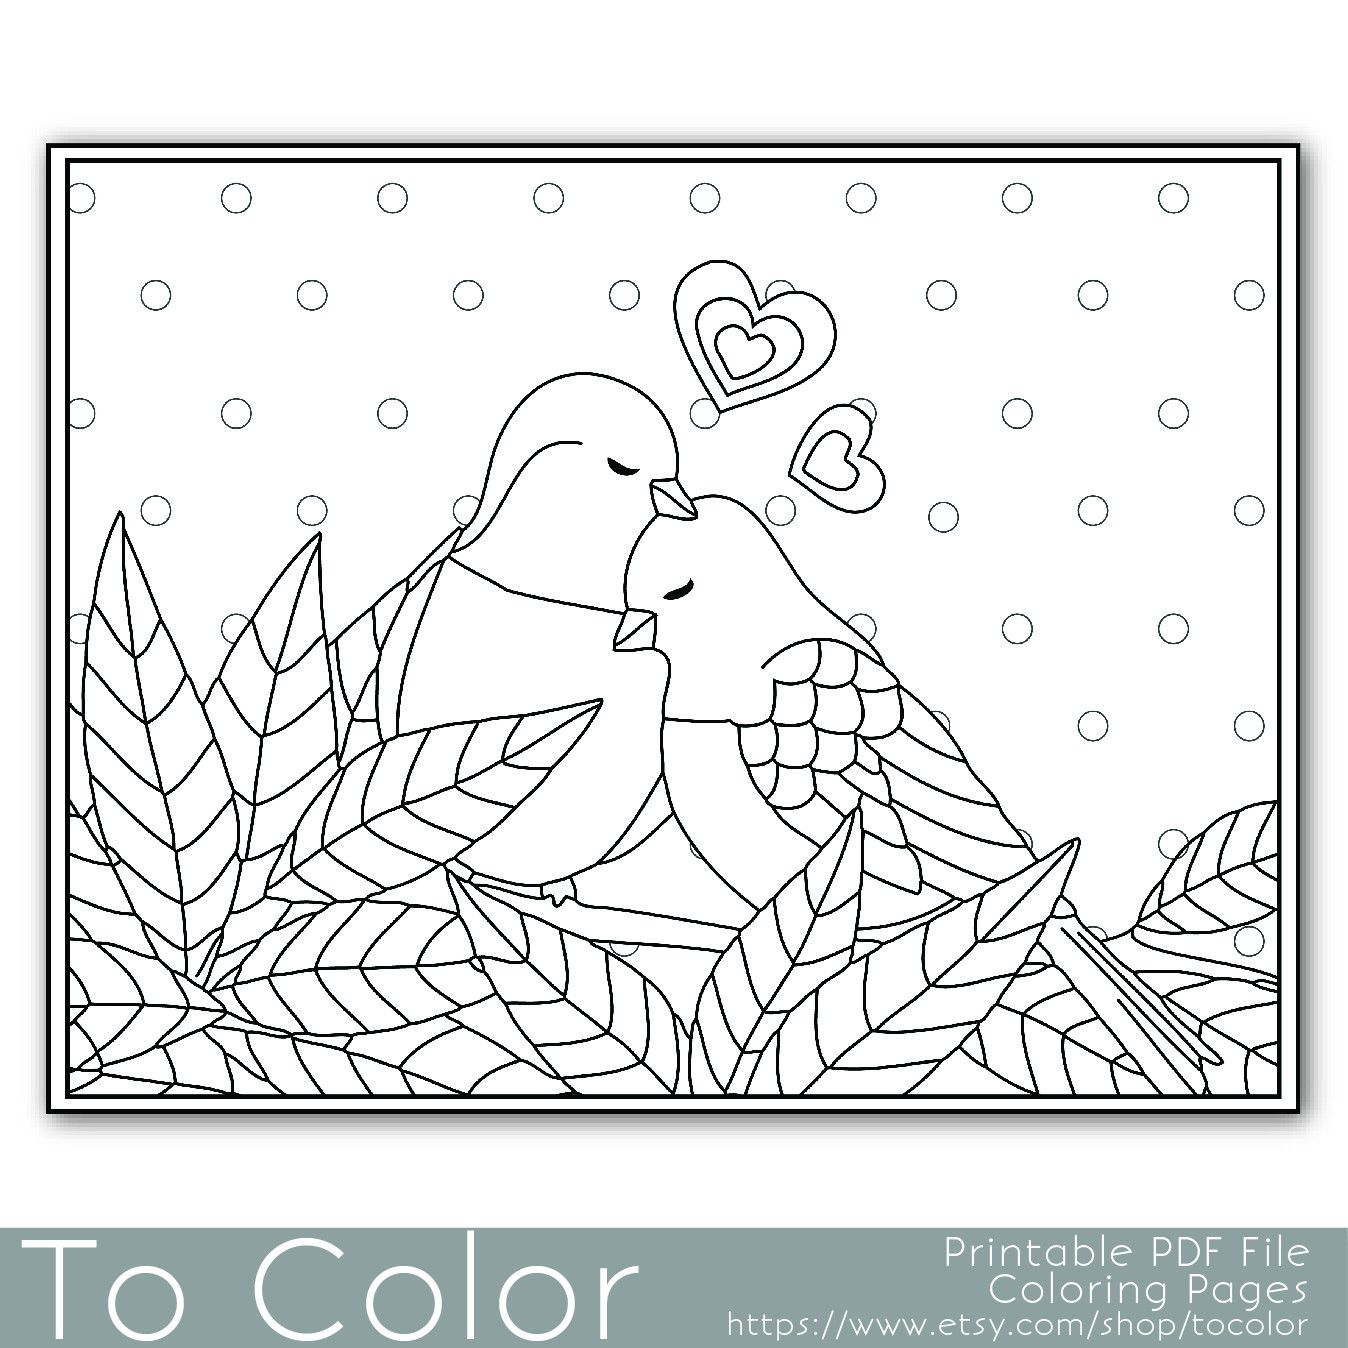 Pet Bird Parrot Finch Canary Coloring Pages Bird Coloring Pages Bird Drawings Bird Art